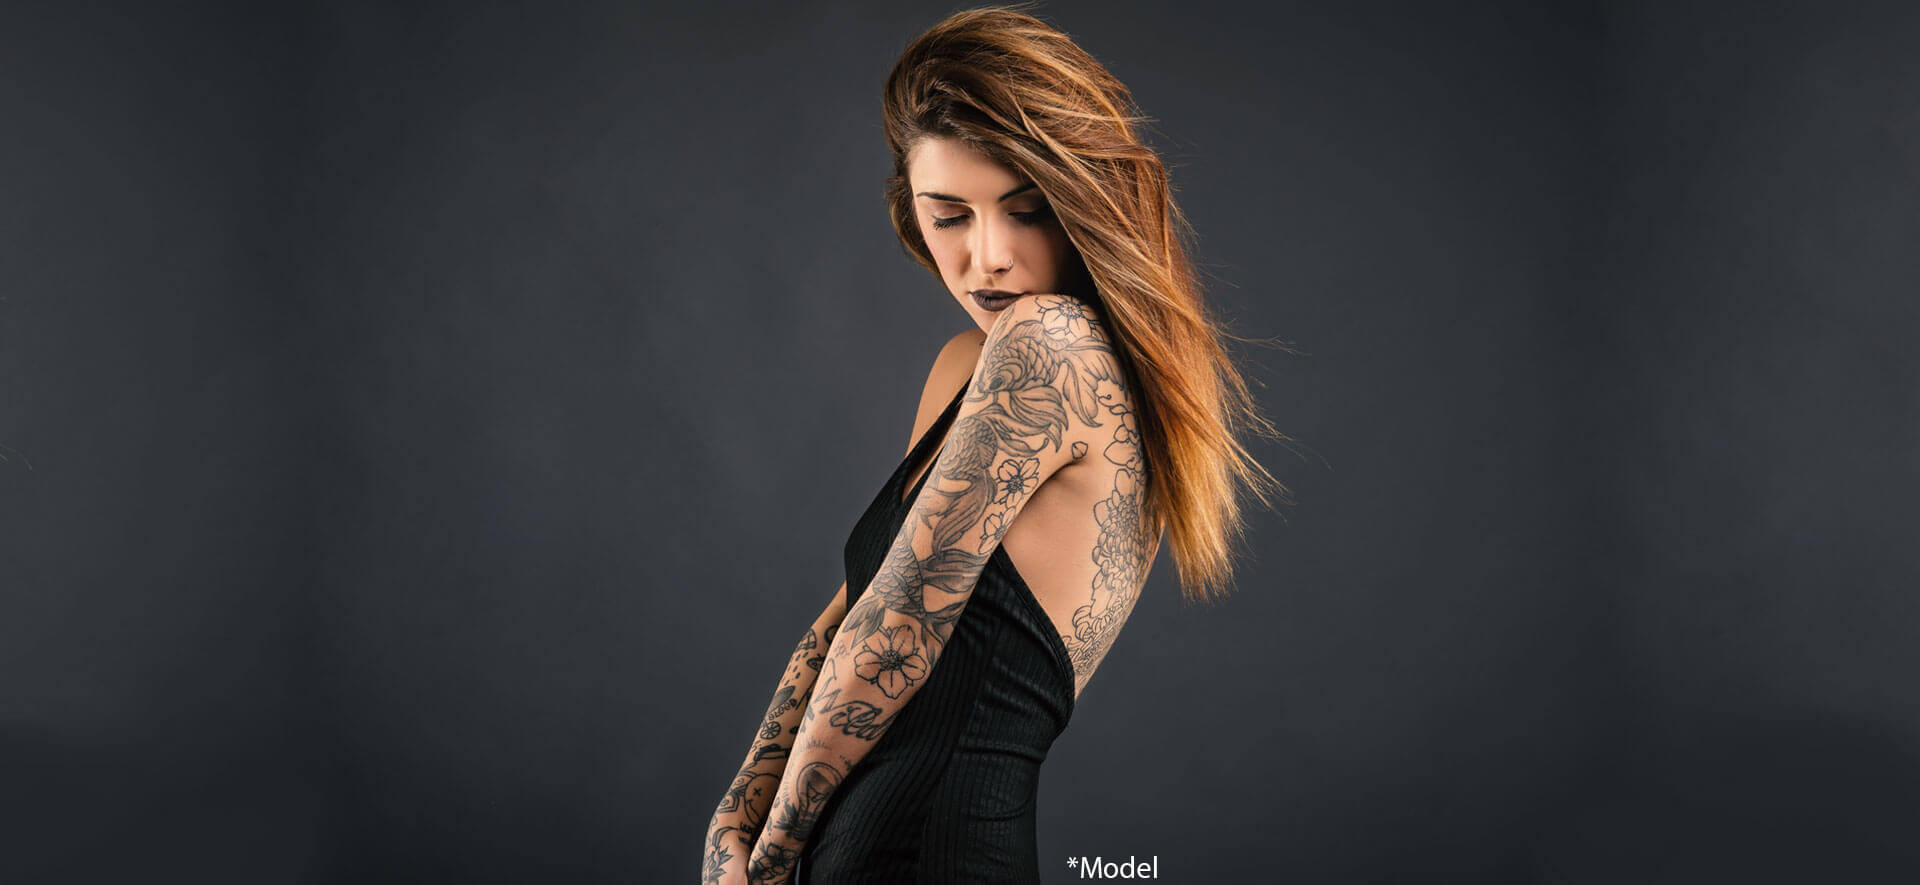 Intimate woman studio portrait with long black dress and tattoos against dark background